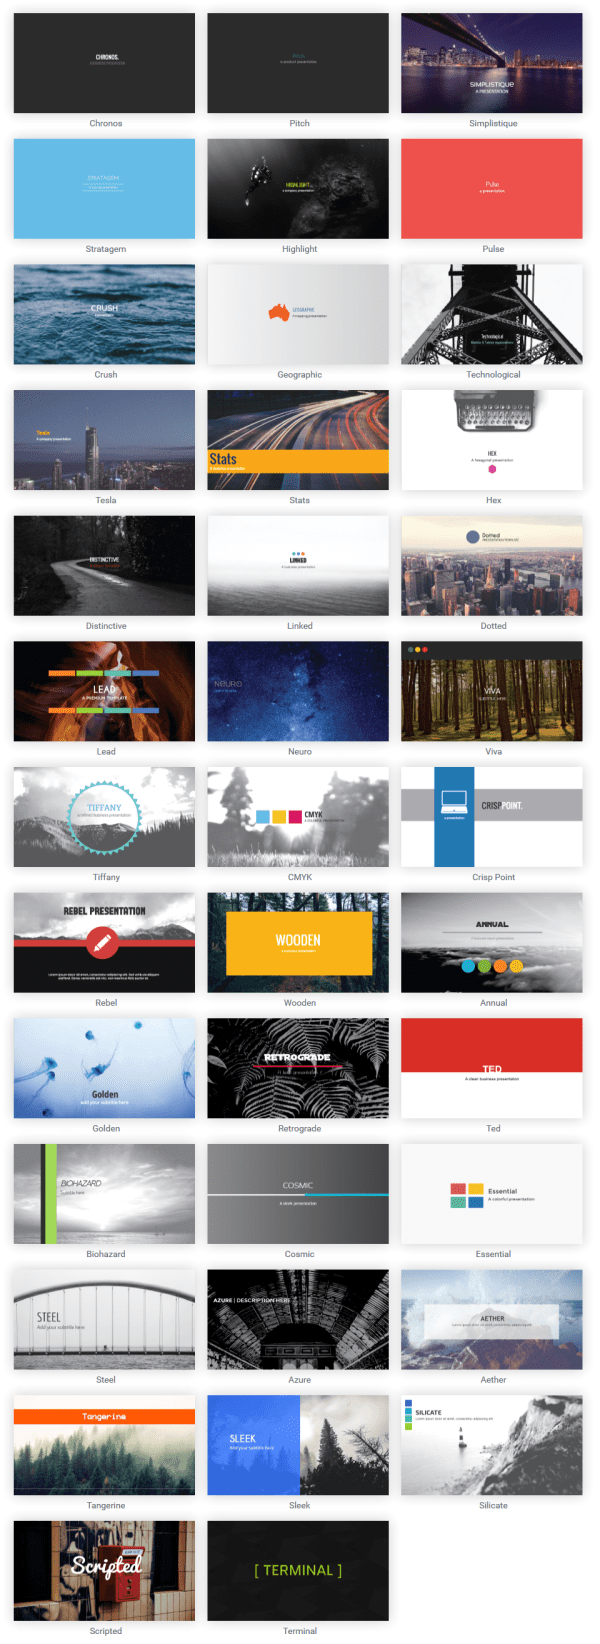 Presentation Templates - Visme Review